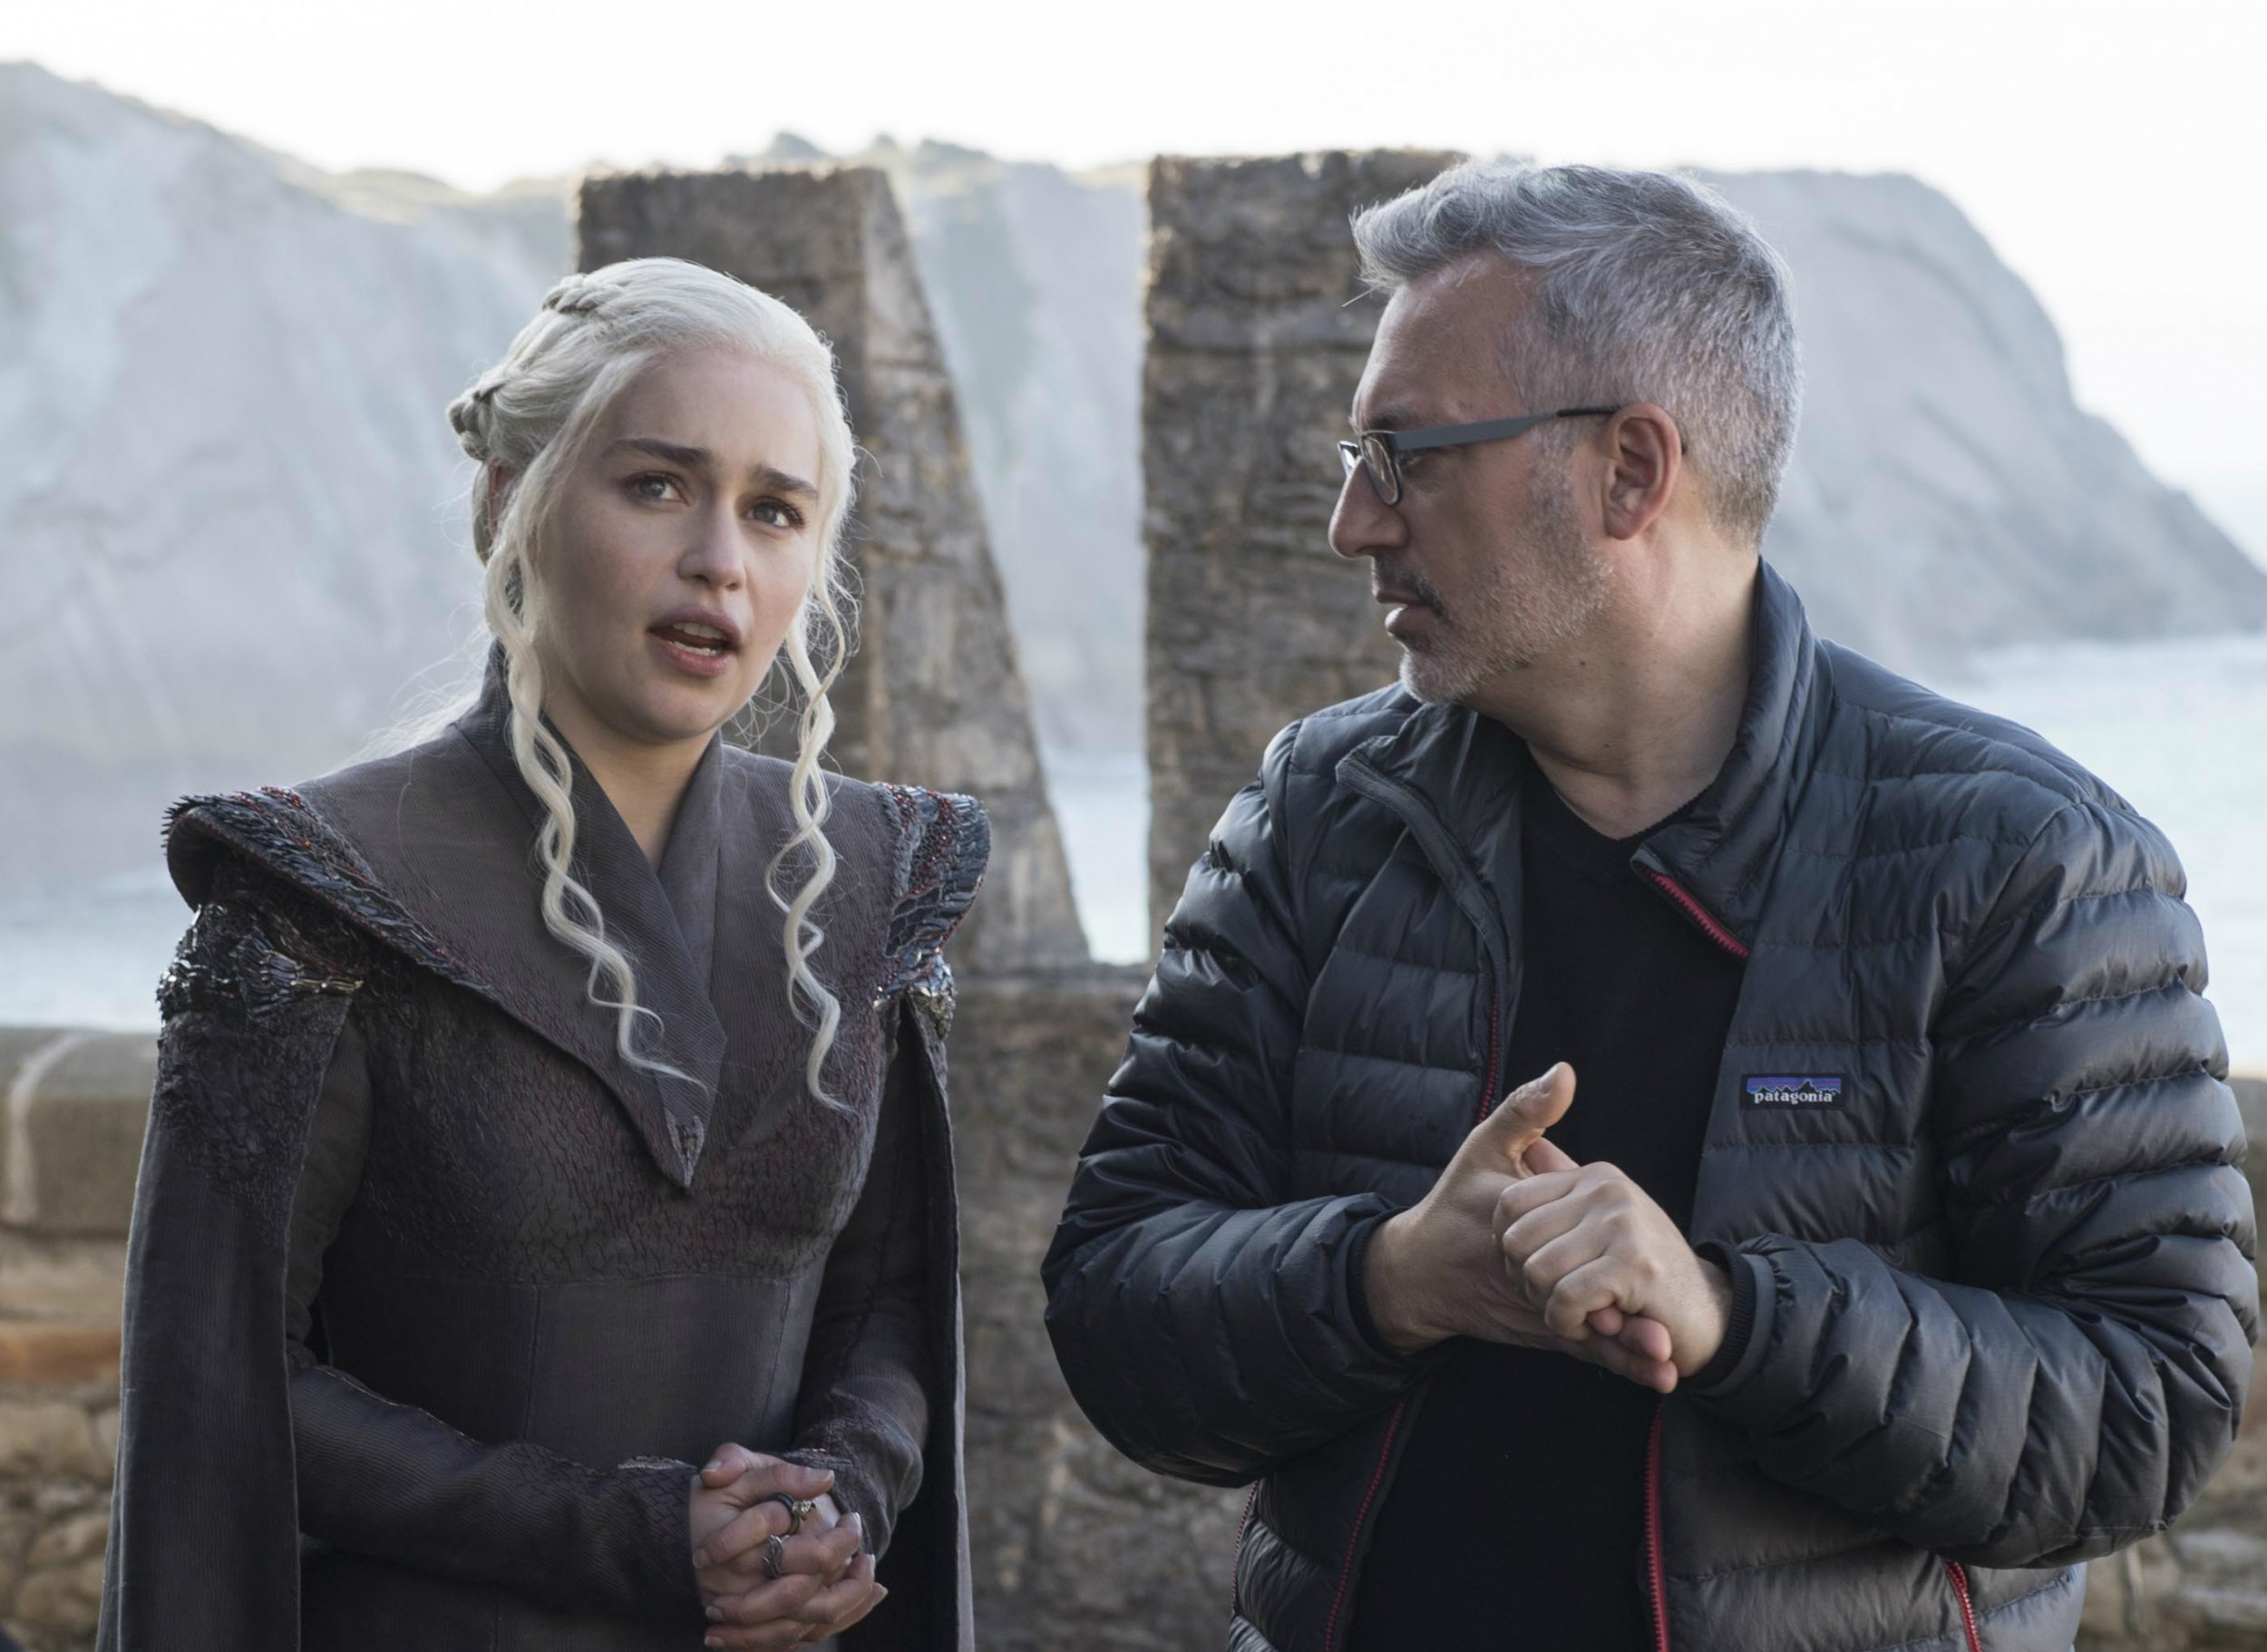 Game of Thrones director Jeremy Podeswa